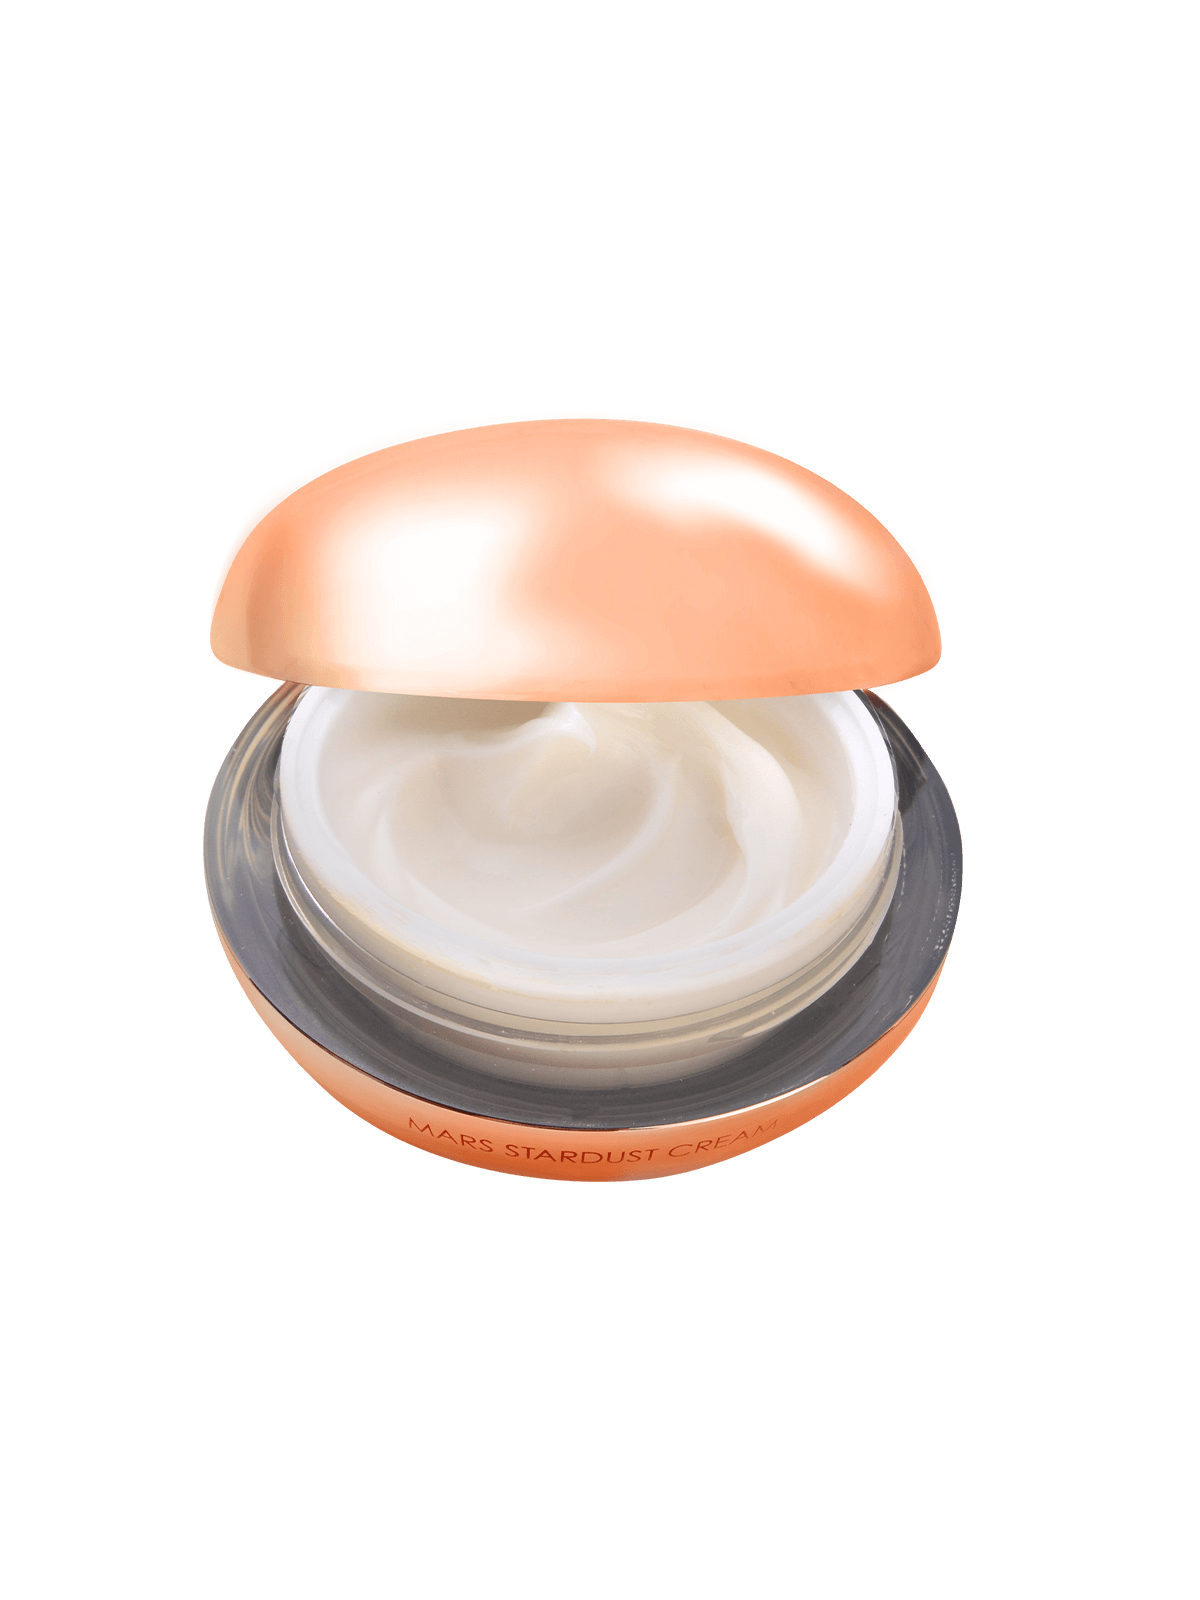 Mars Stardust Cream with open lid